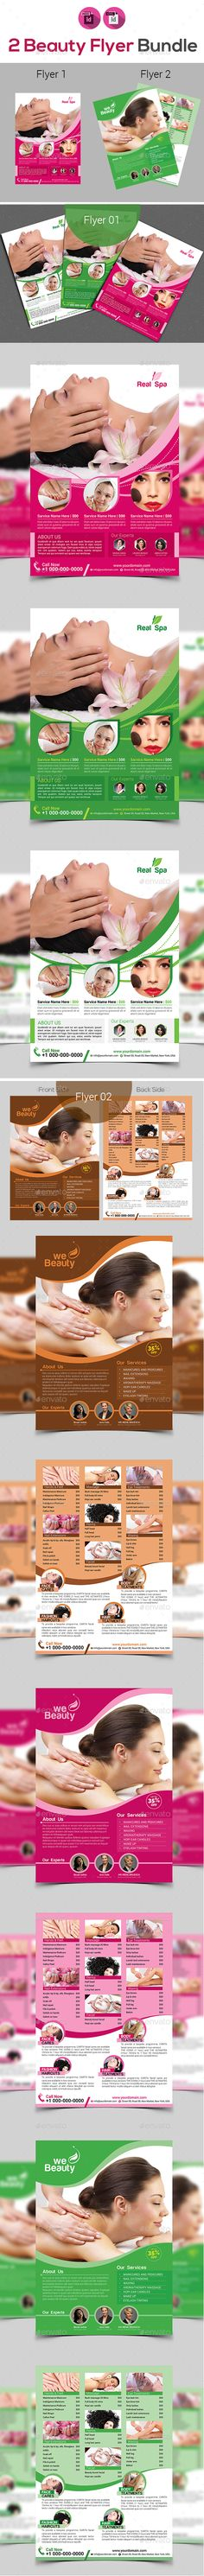 Spa & Beauty Salon Flyer Bundle V2 - Corporate Flyers